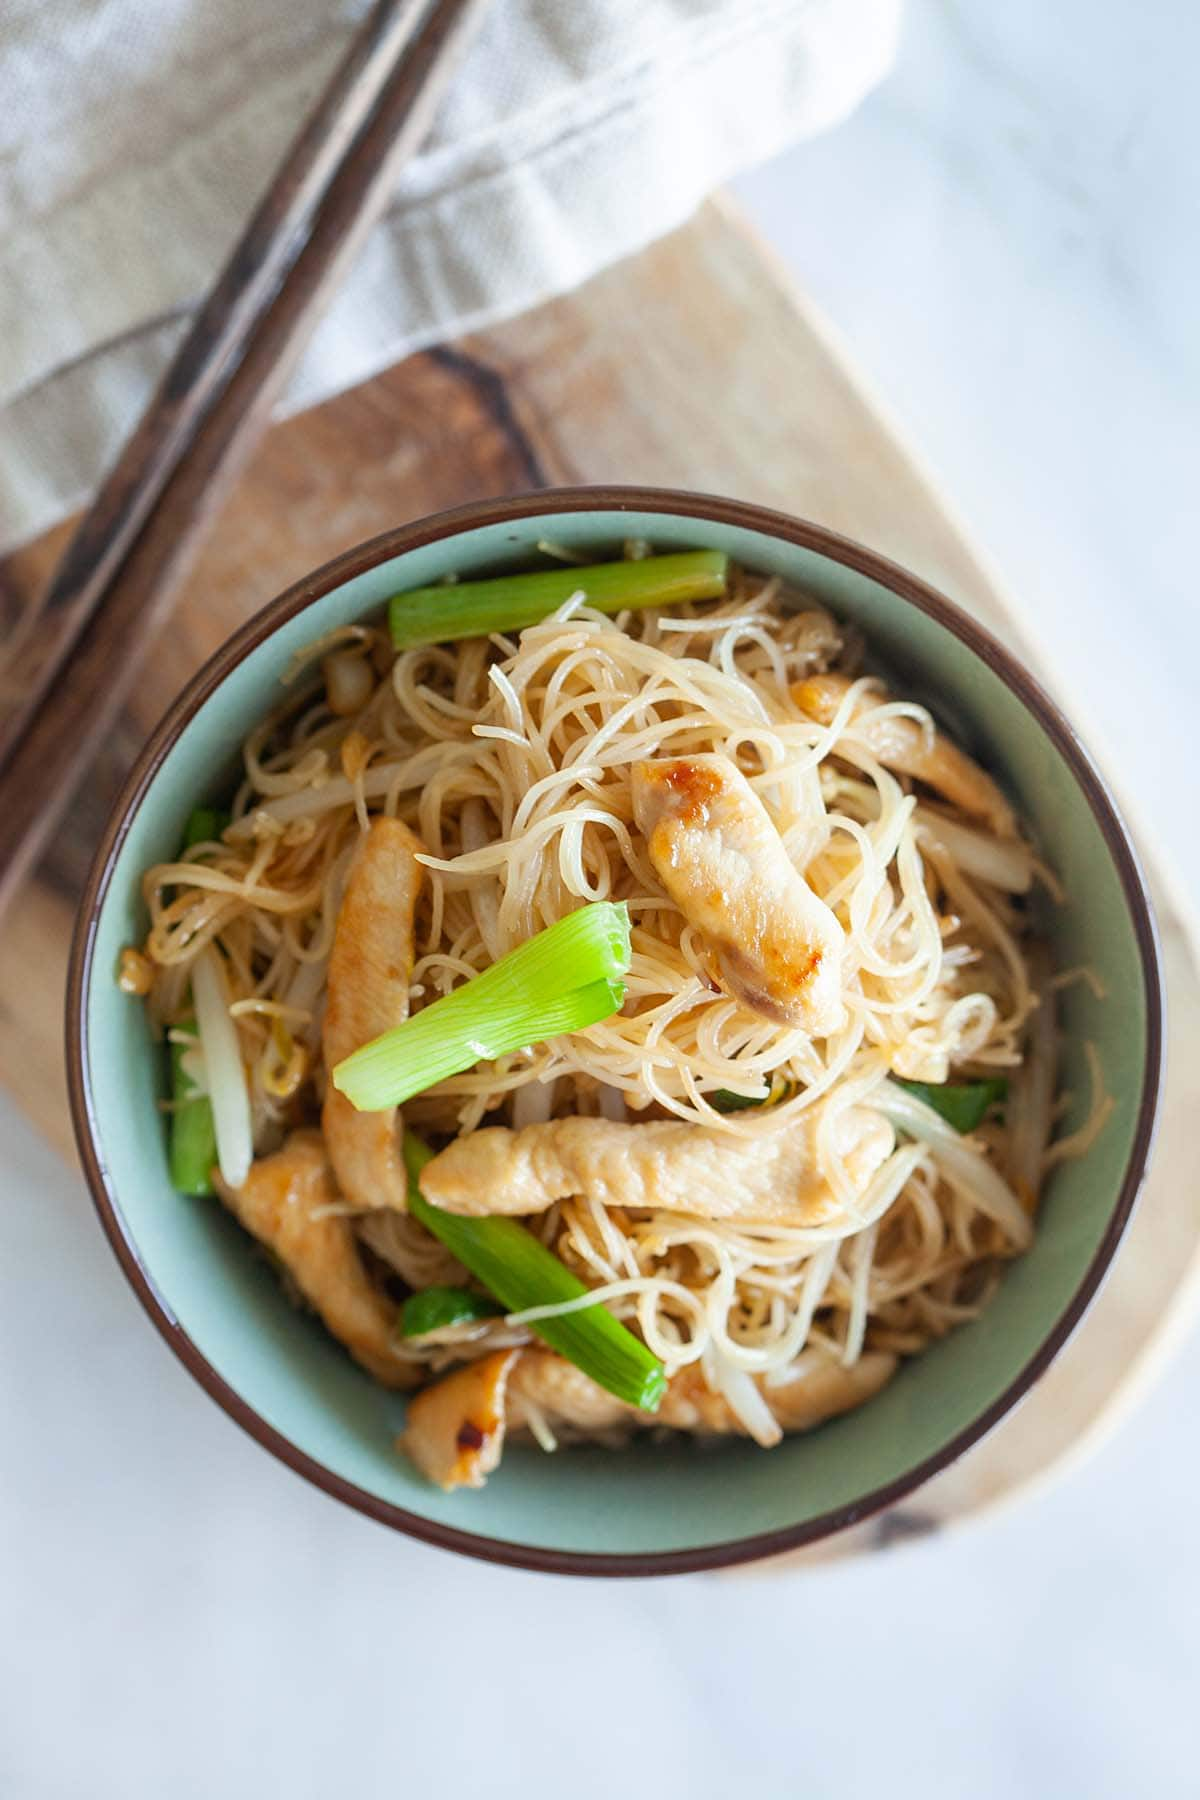 Vermicelli noodles served in a bowl.